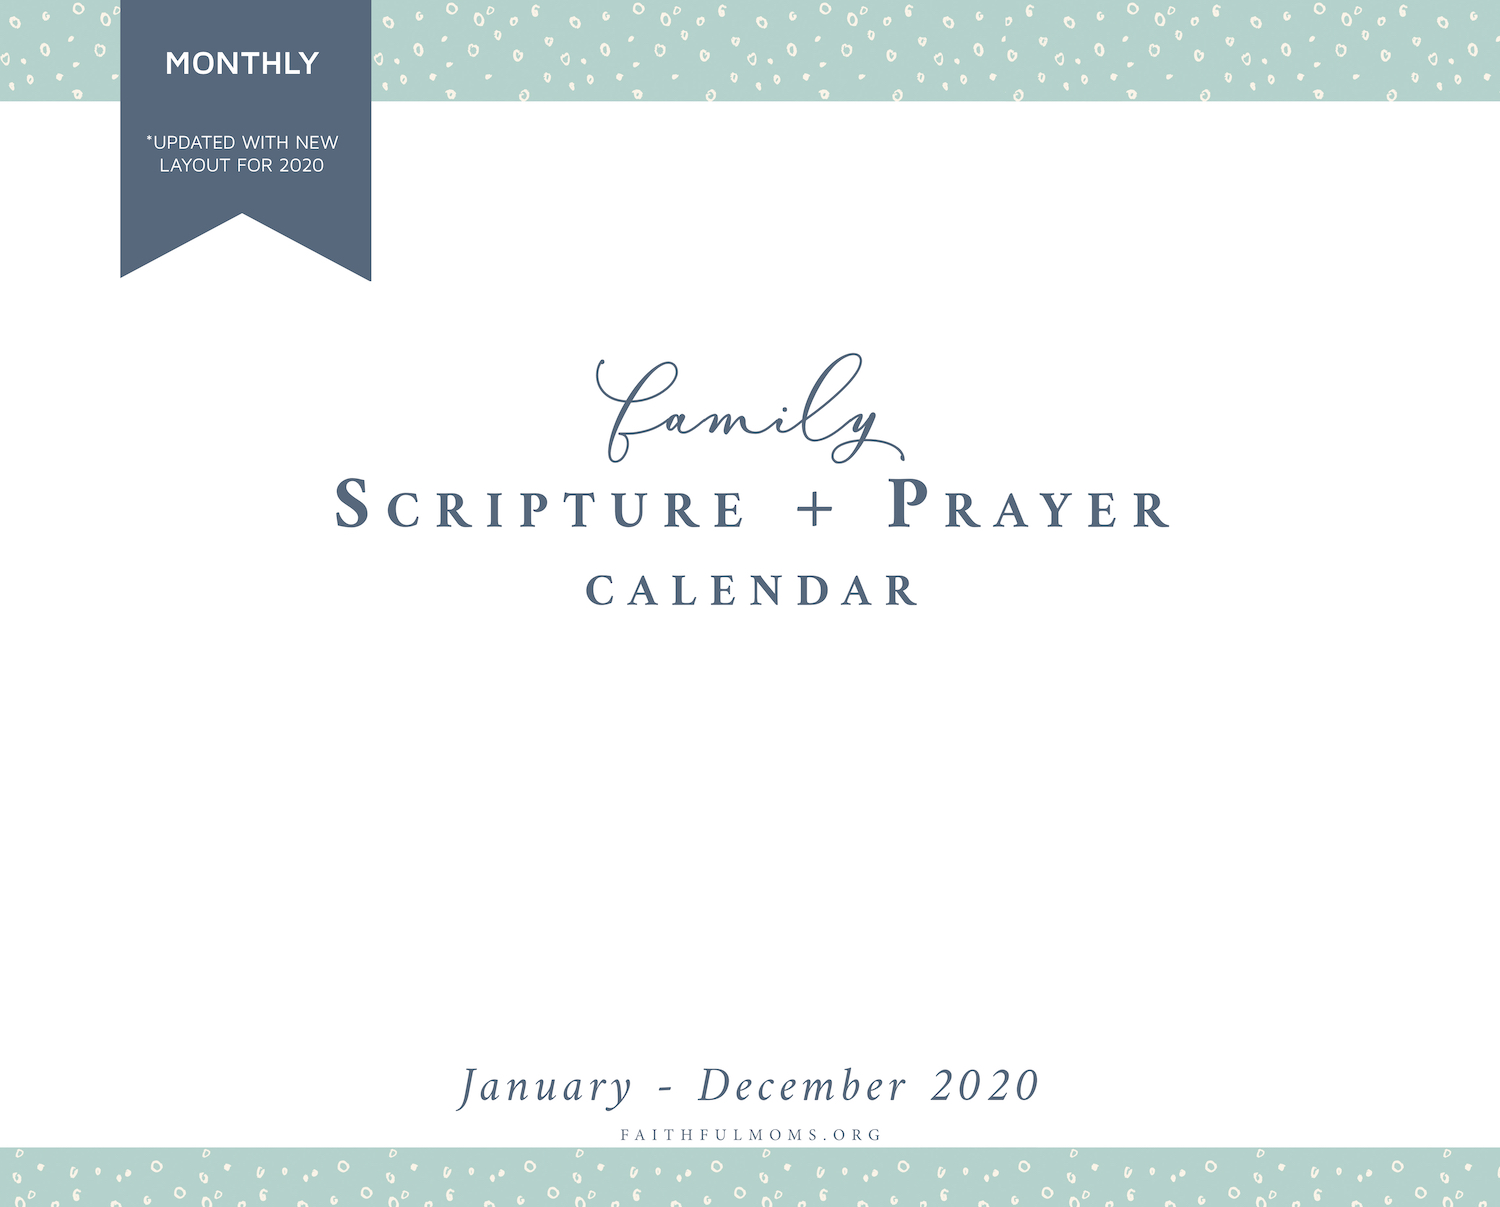 2020 Family Scripture + Prayer Calendar from Faithful Moms and the Faithful Life Planner